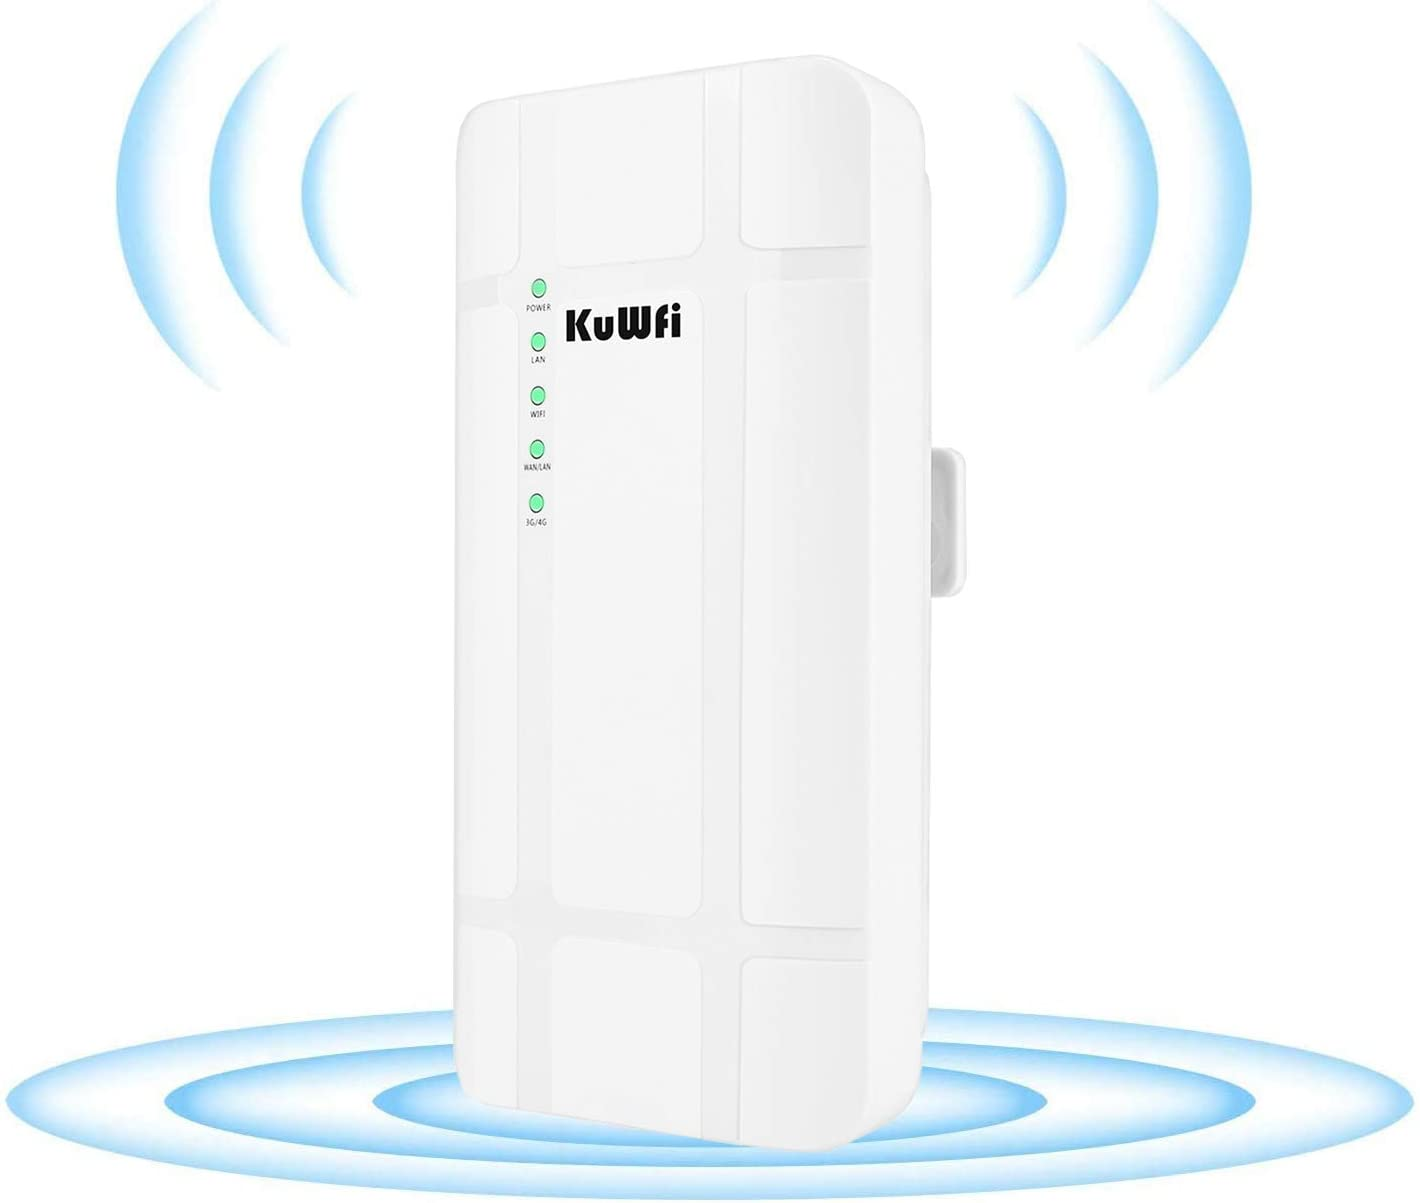 KuWFi 300Mbps Waterproof Outdoor 4G LTE CPE Router with POE Adapter CAT4 LTE Routers 3G/4G SIM Card WiFi Router for IP Camera/Outside WiFi Coverage (EU Version B1/B3/B7/B8 /B20)